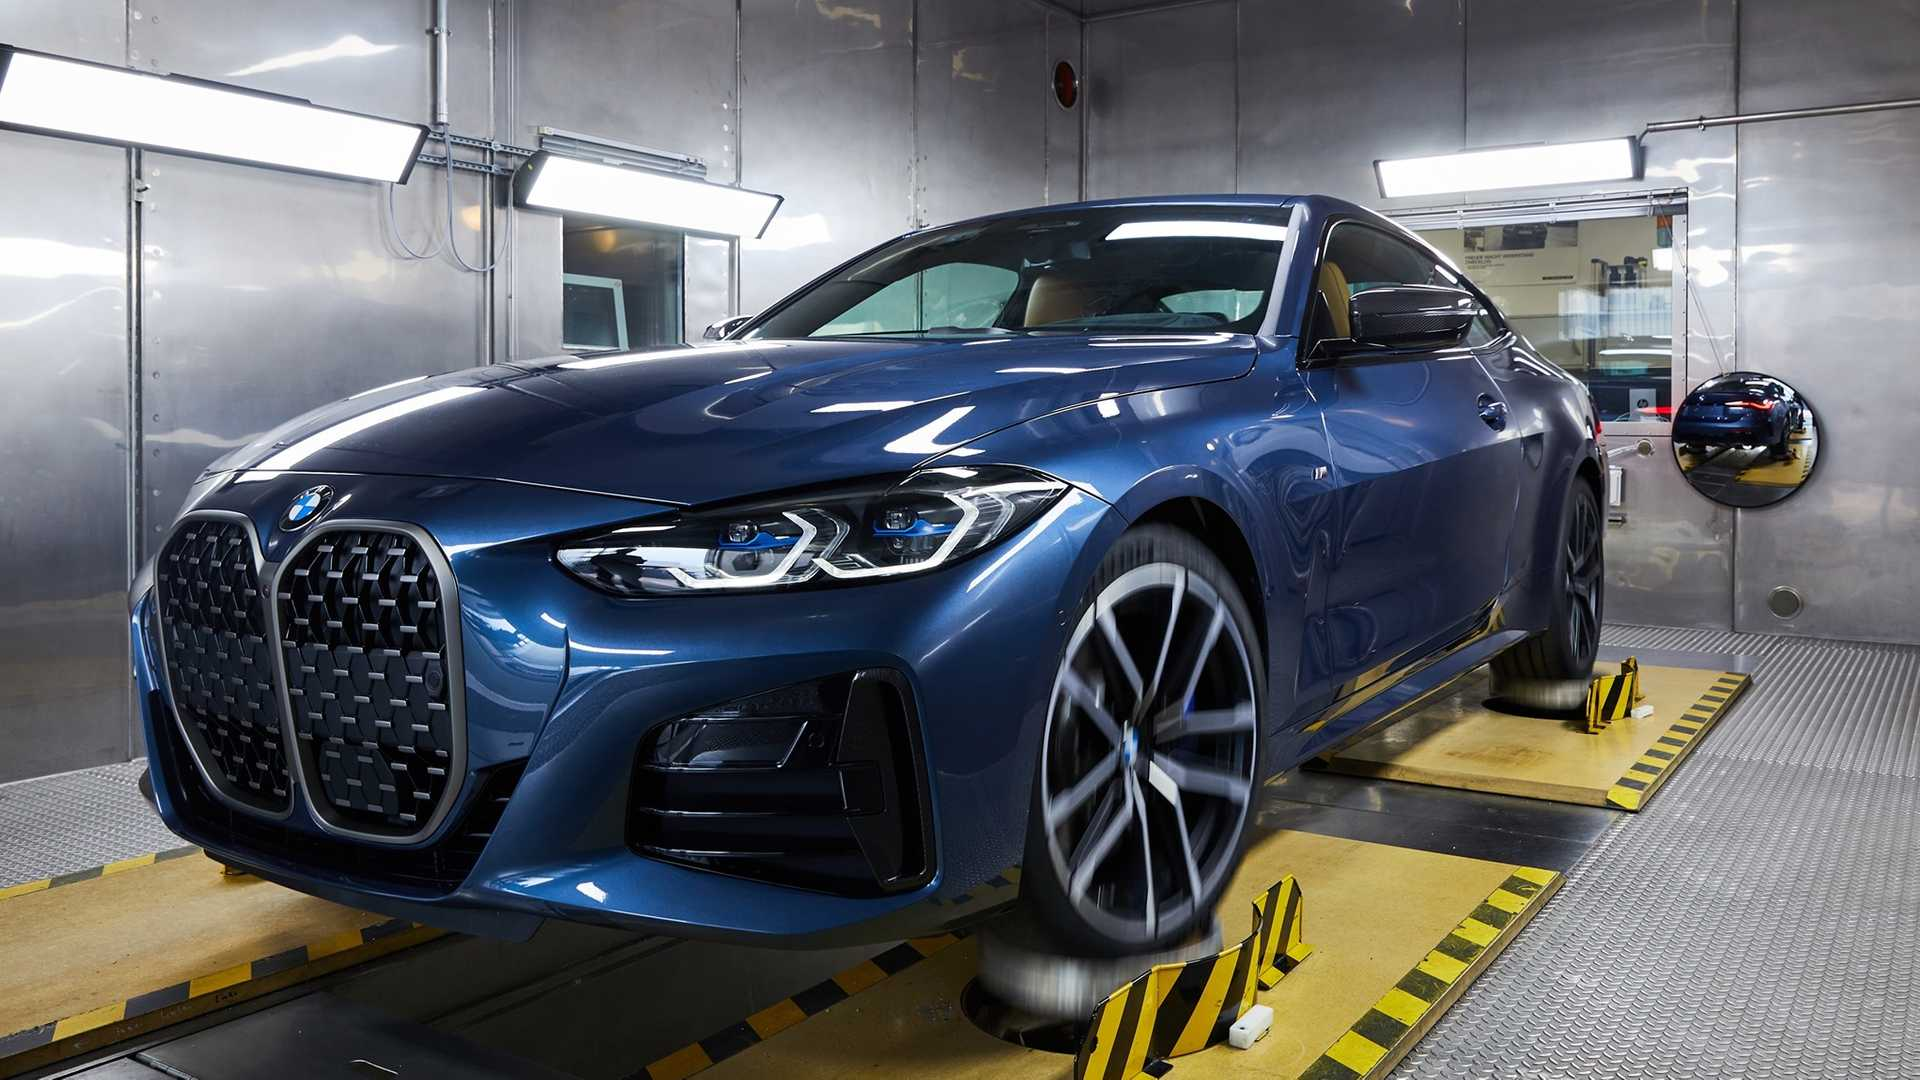 New BMW 4 Series Enters Production, Brings XXL Grille To Assembly Line